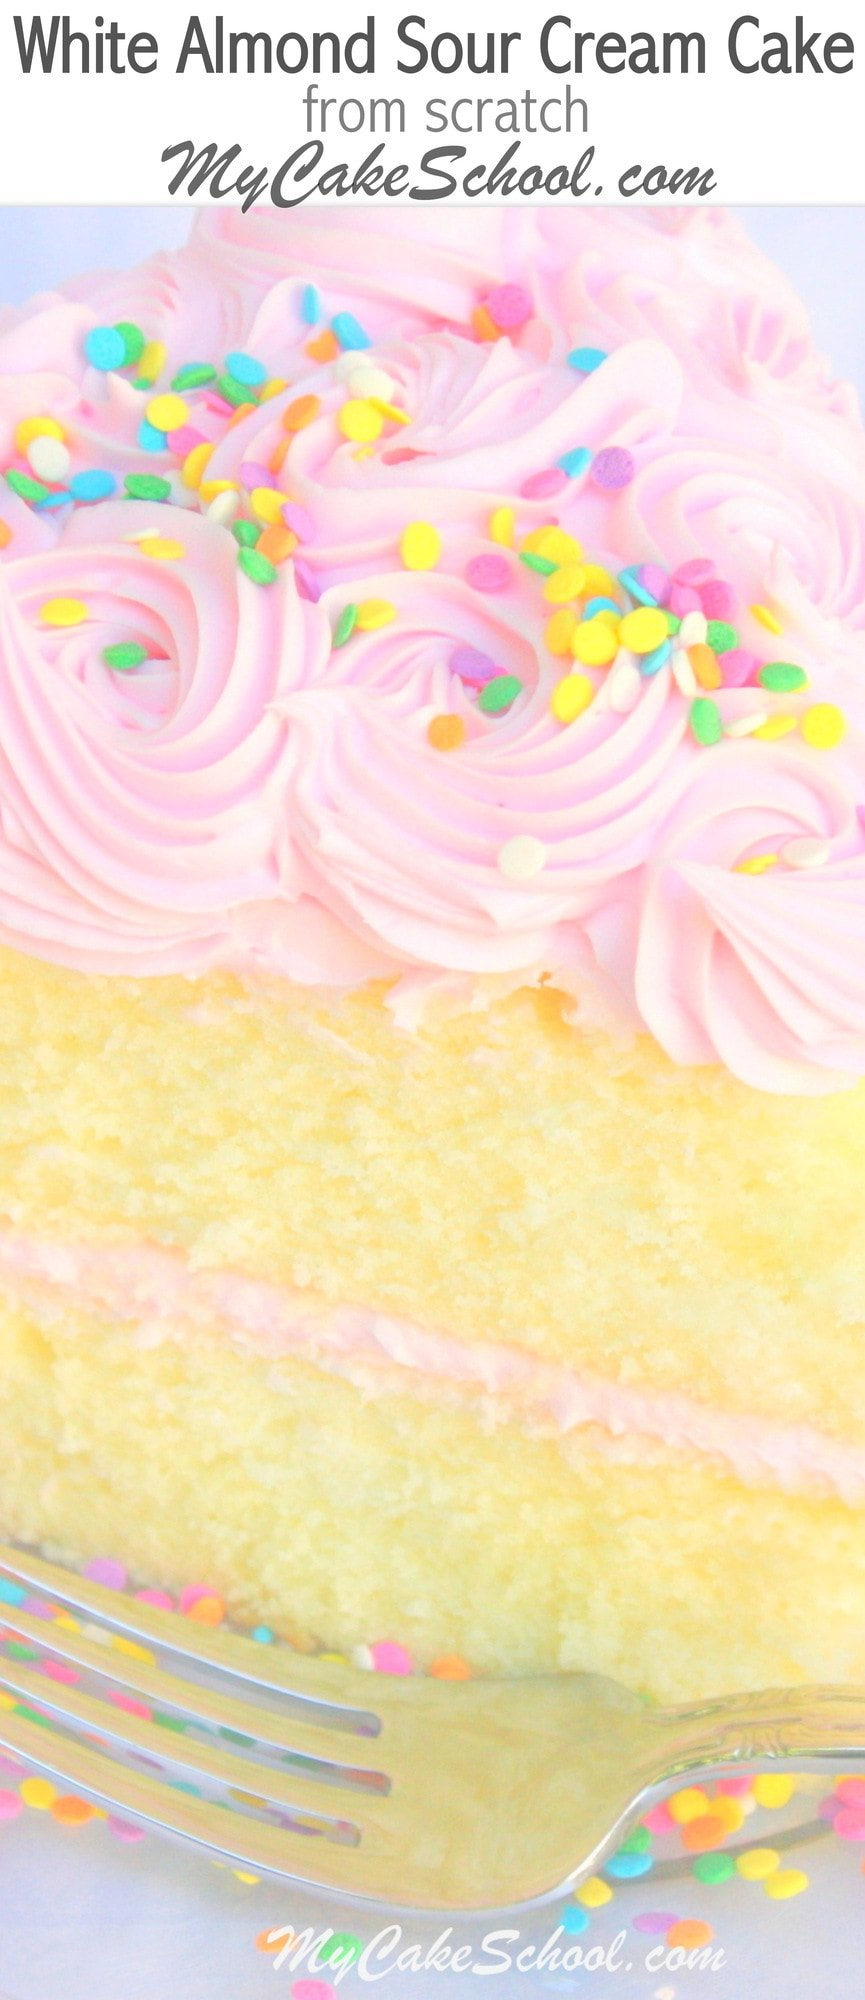 From Scratch White Almond Sour Cream Cake